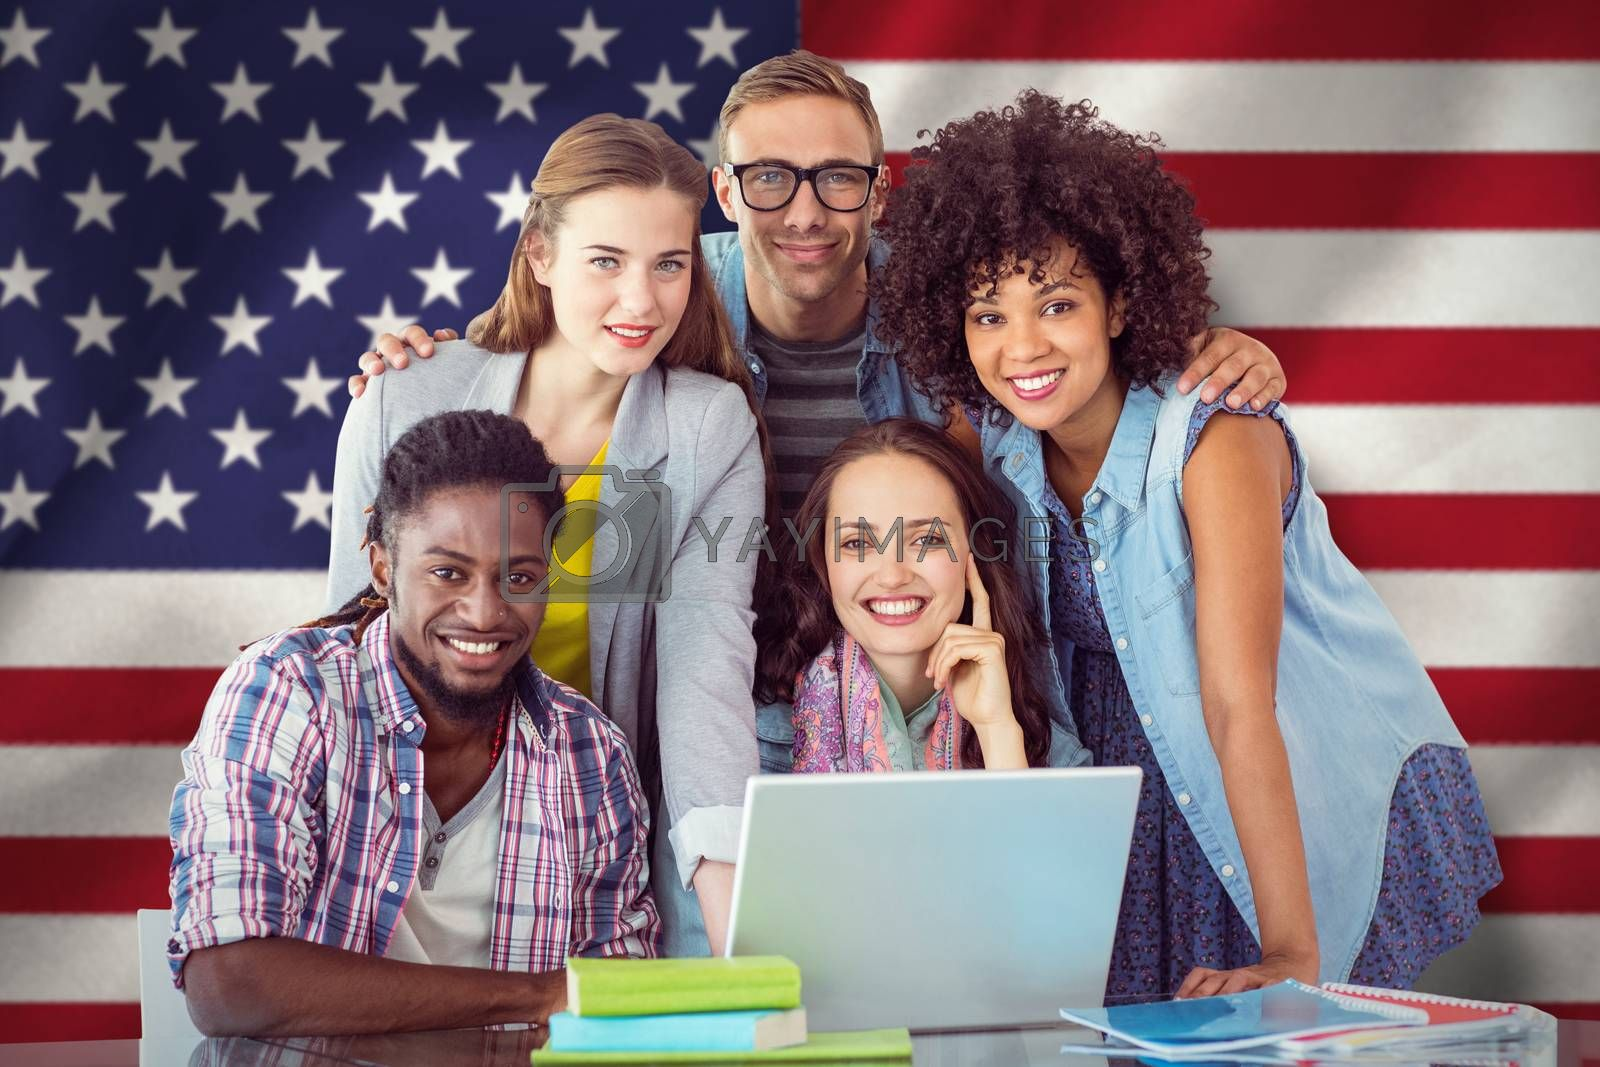 Fashion students working as a team  against digitally generated american national flag